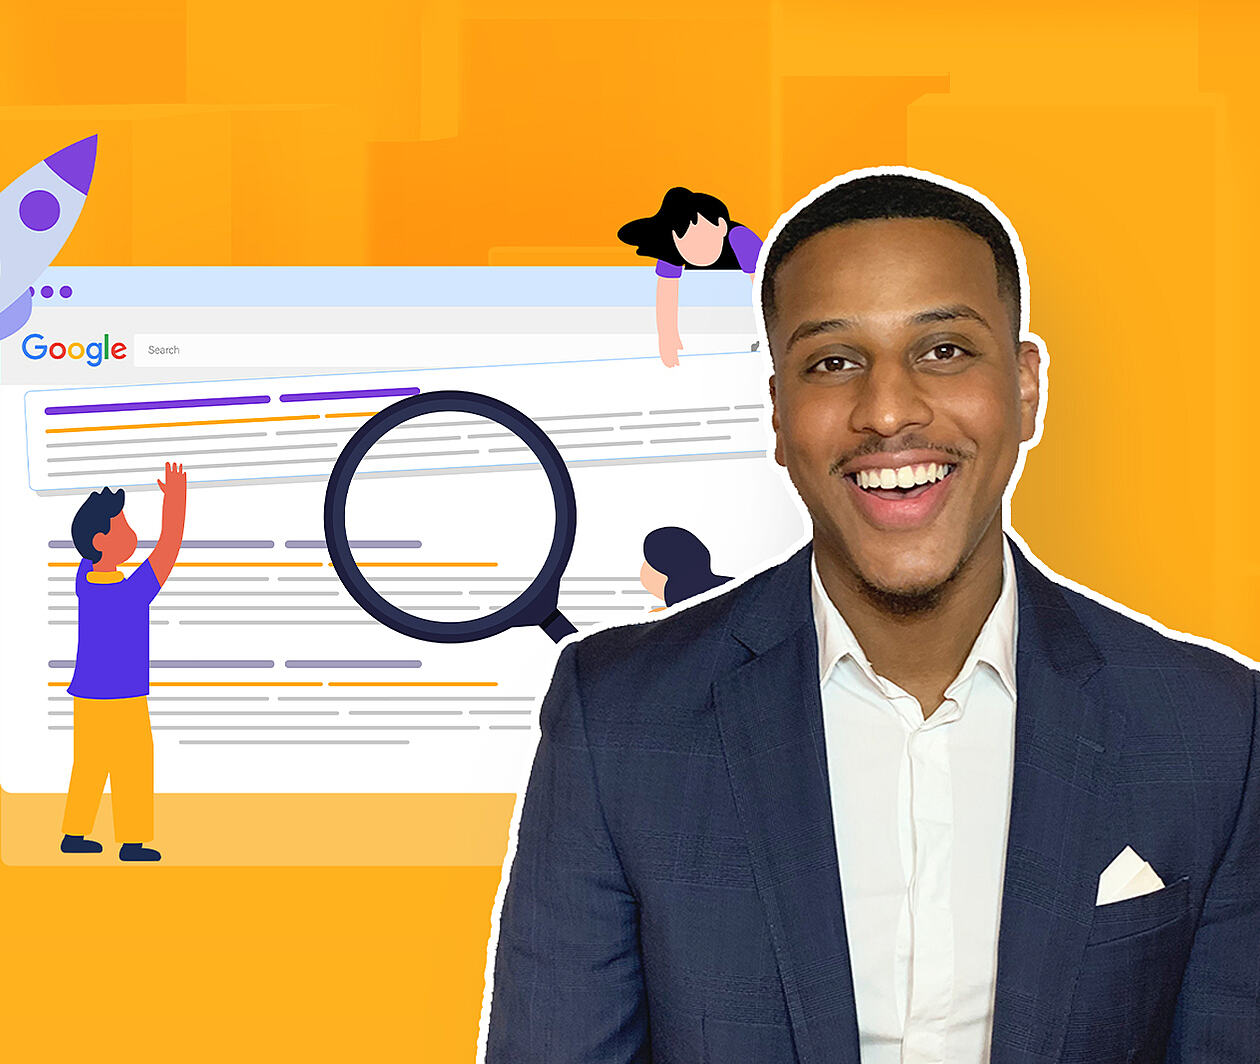 The Ultimate SEO and Wordpress Training Course for 2020: Rank #1